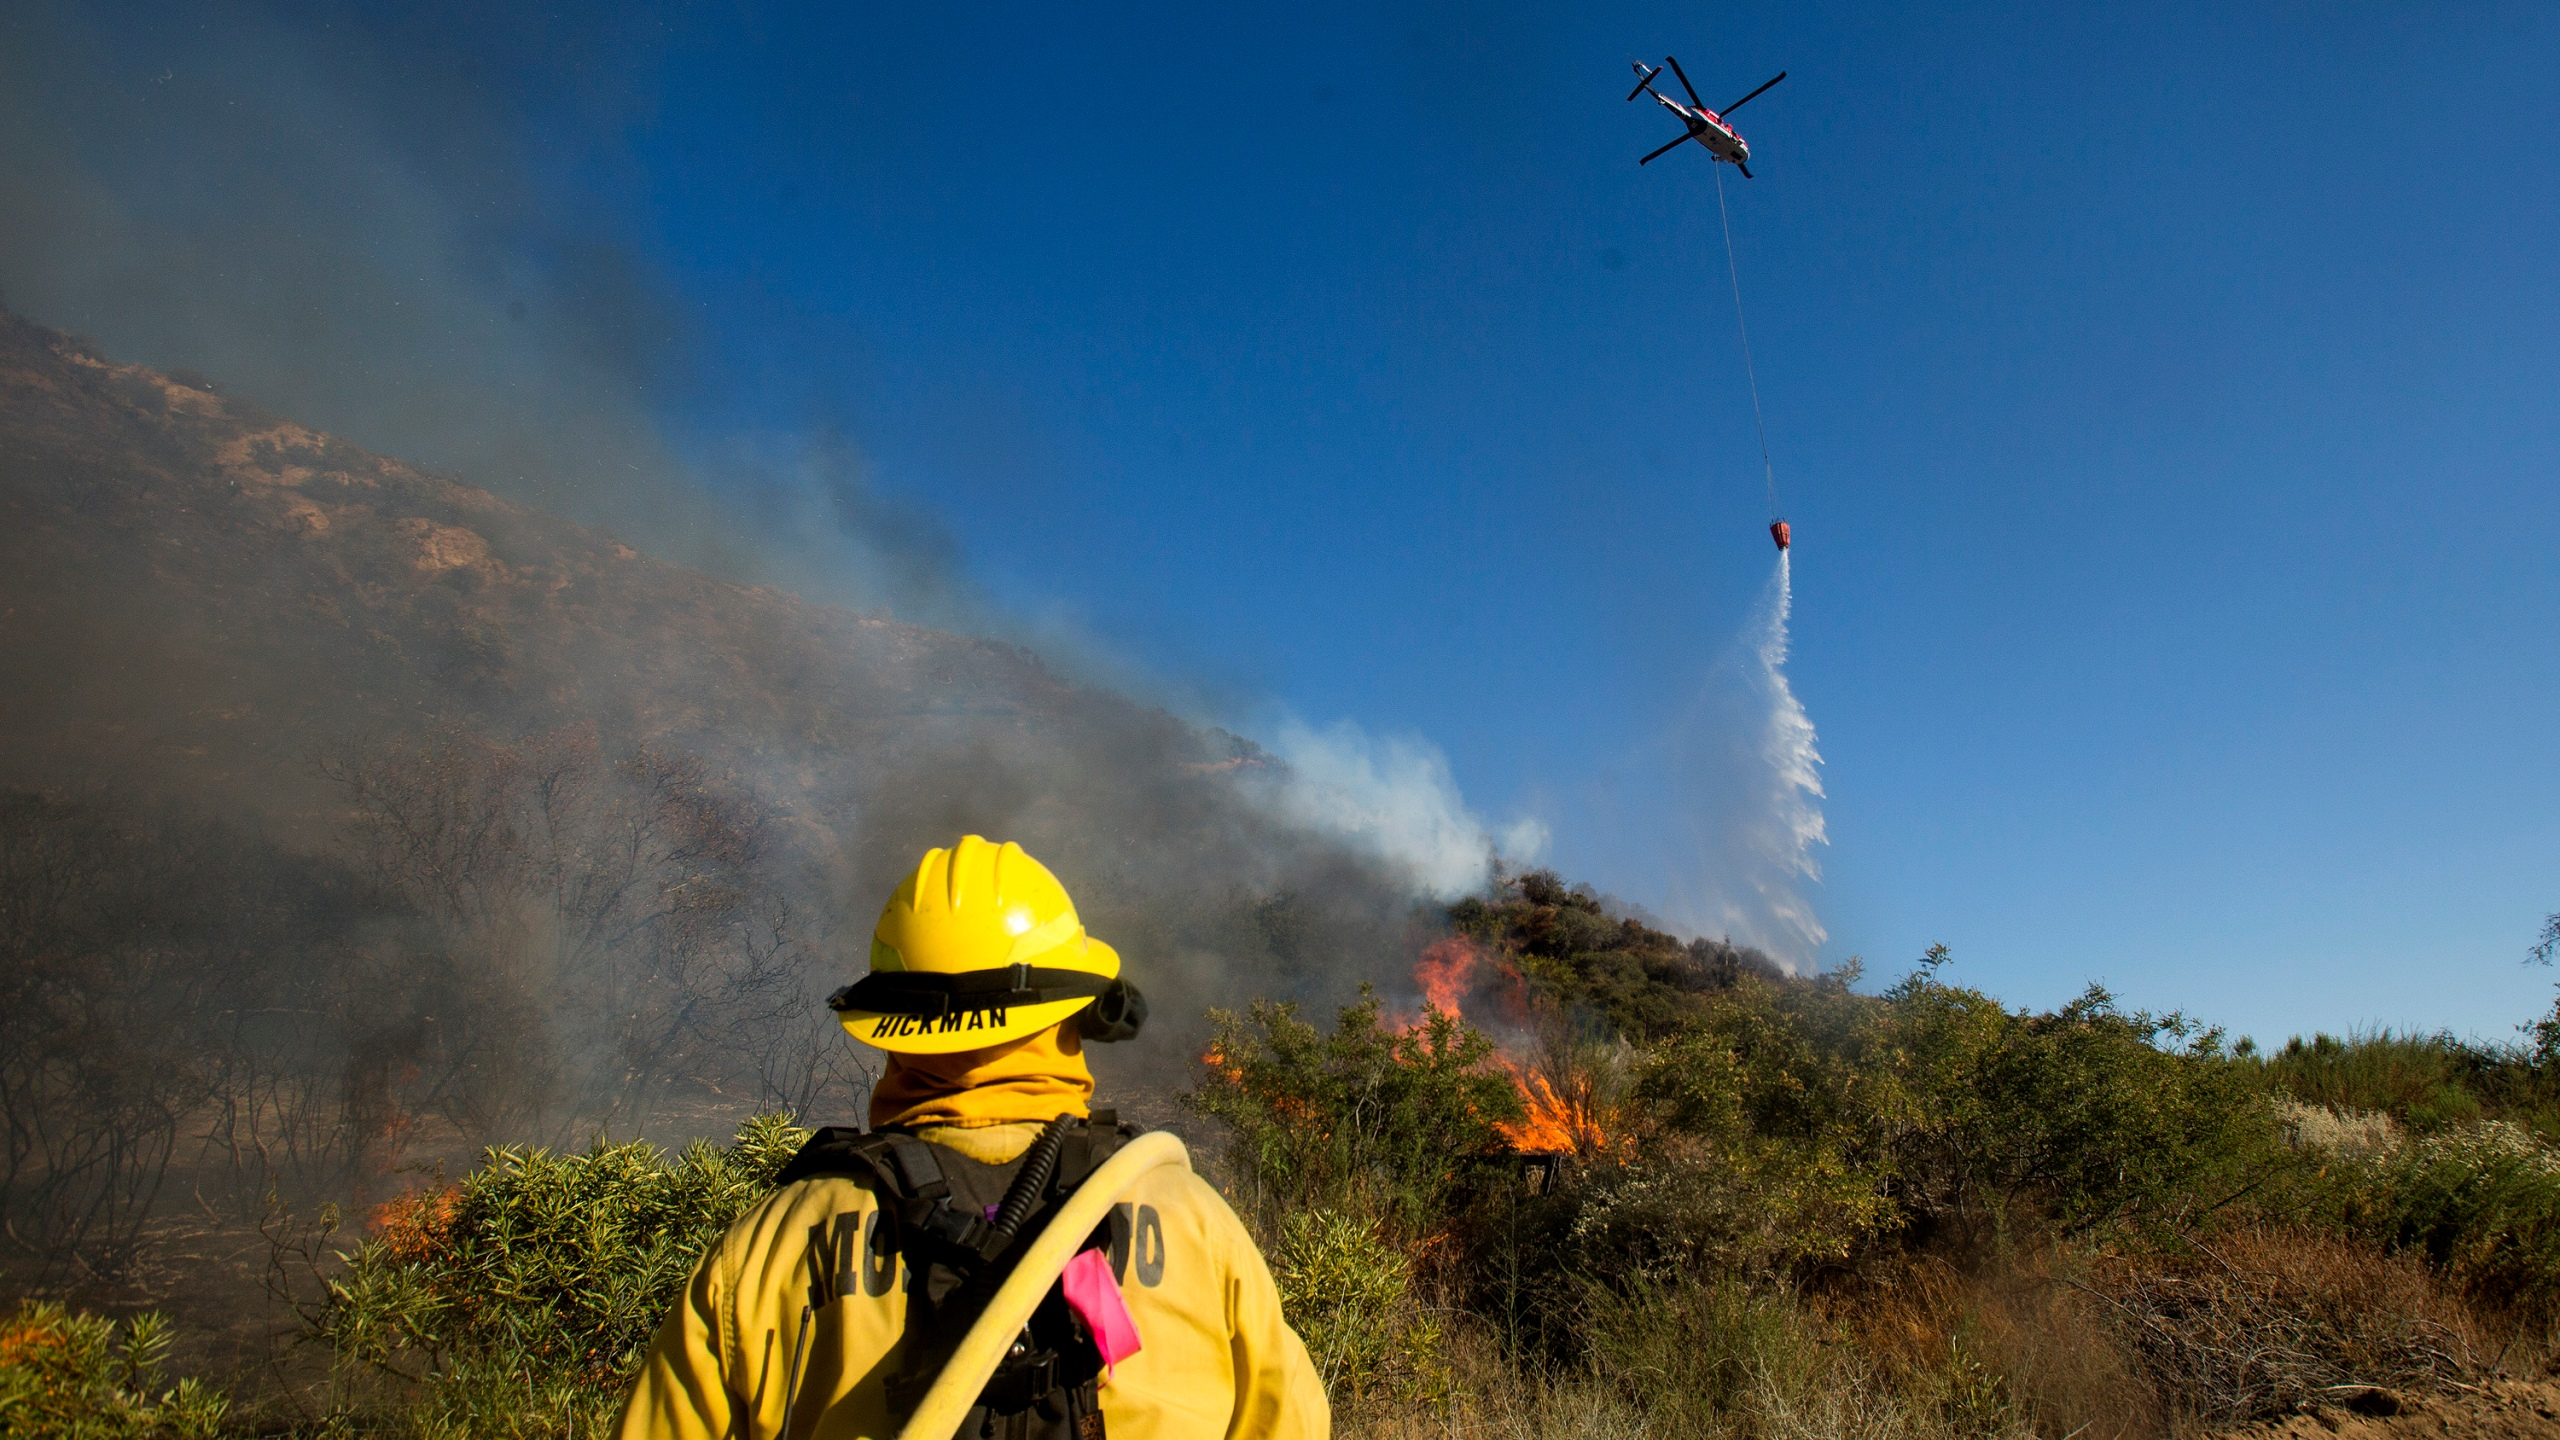 A firefighter watches as a helicopter drops water onto the Apple Fire near Banning, Calif., Sunday, Aug. 2, 2020. (AP Photo/Ringo H.W. Chiu)